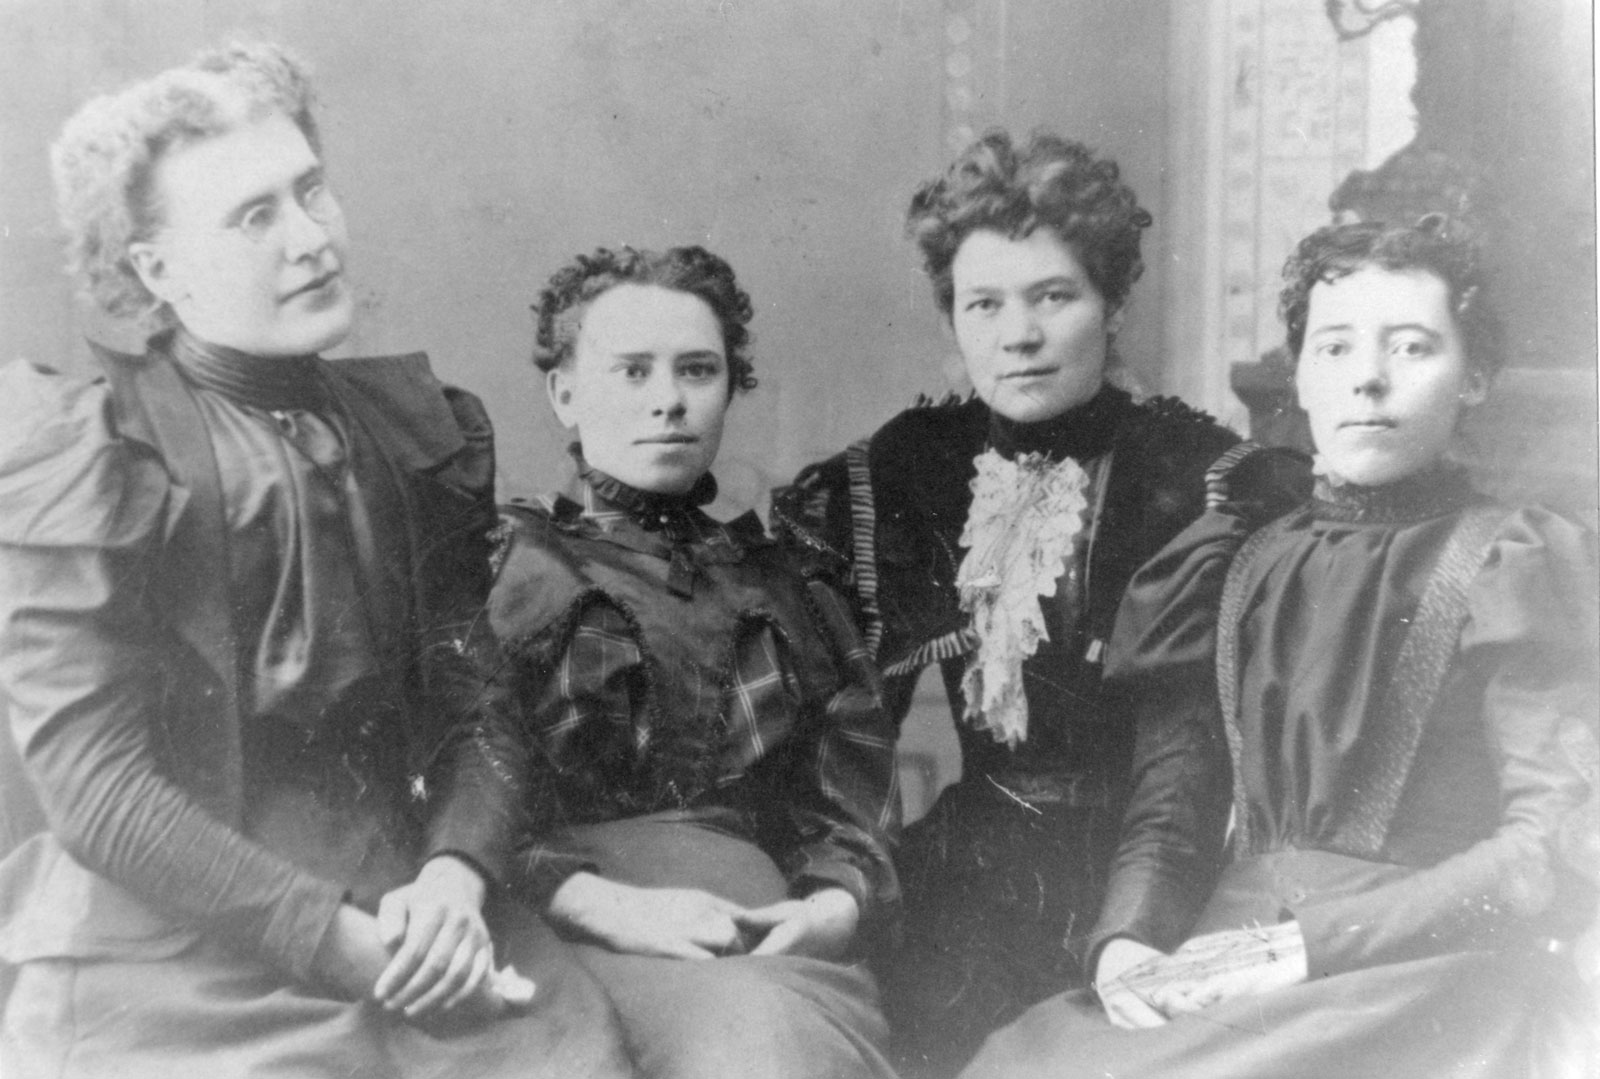 A studio portrait of four women.